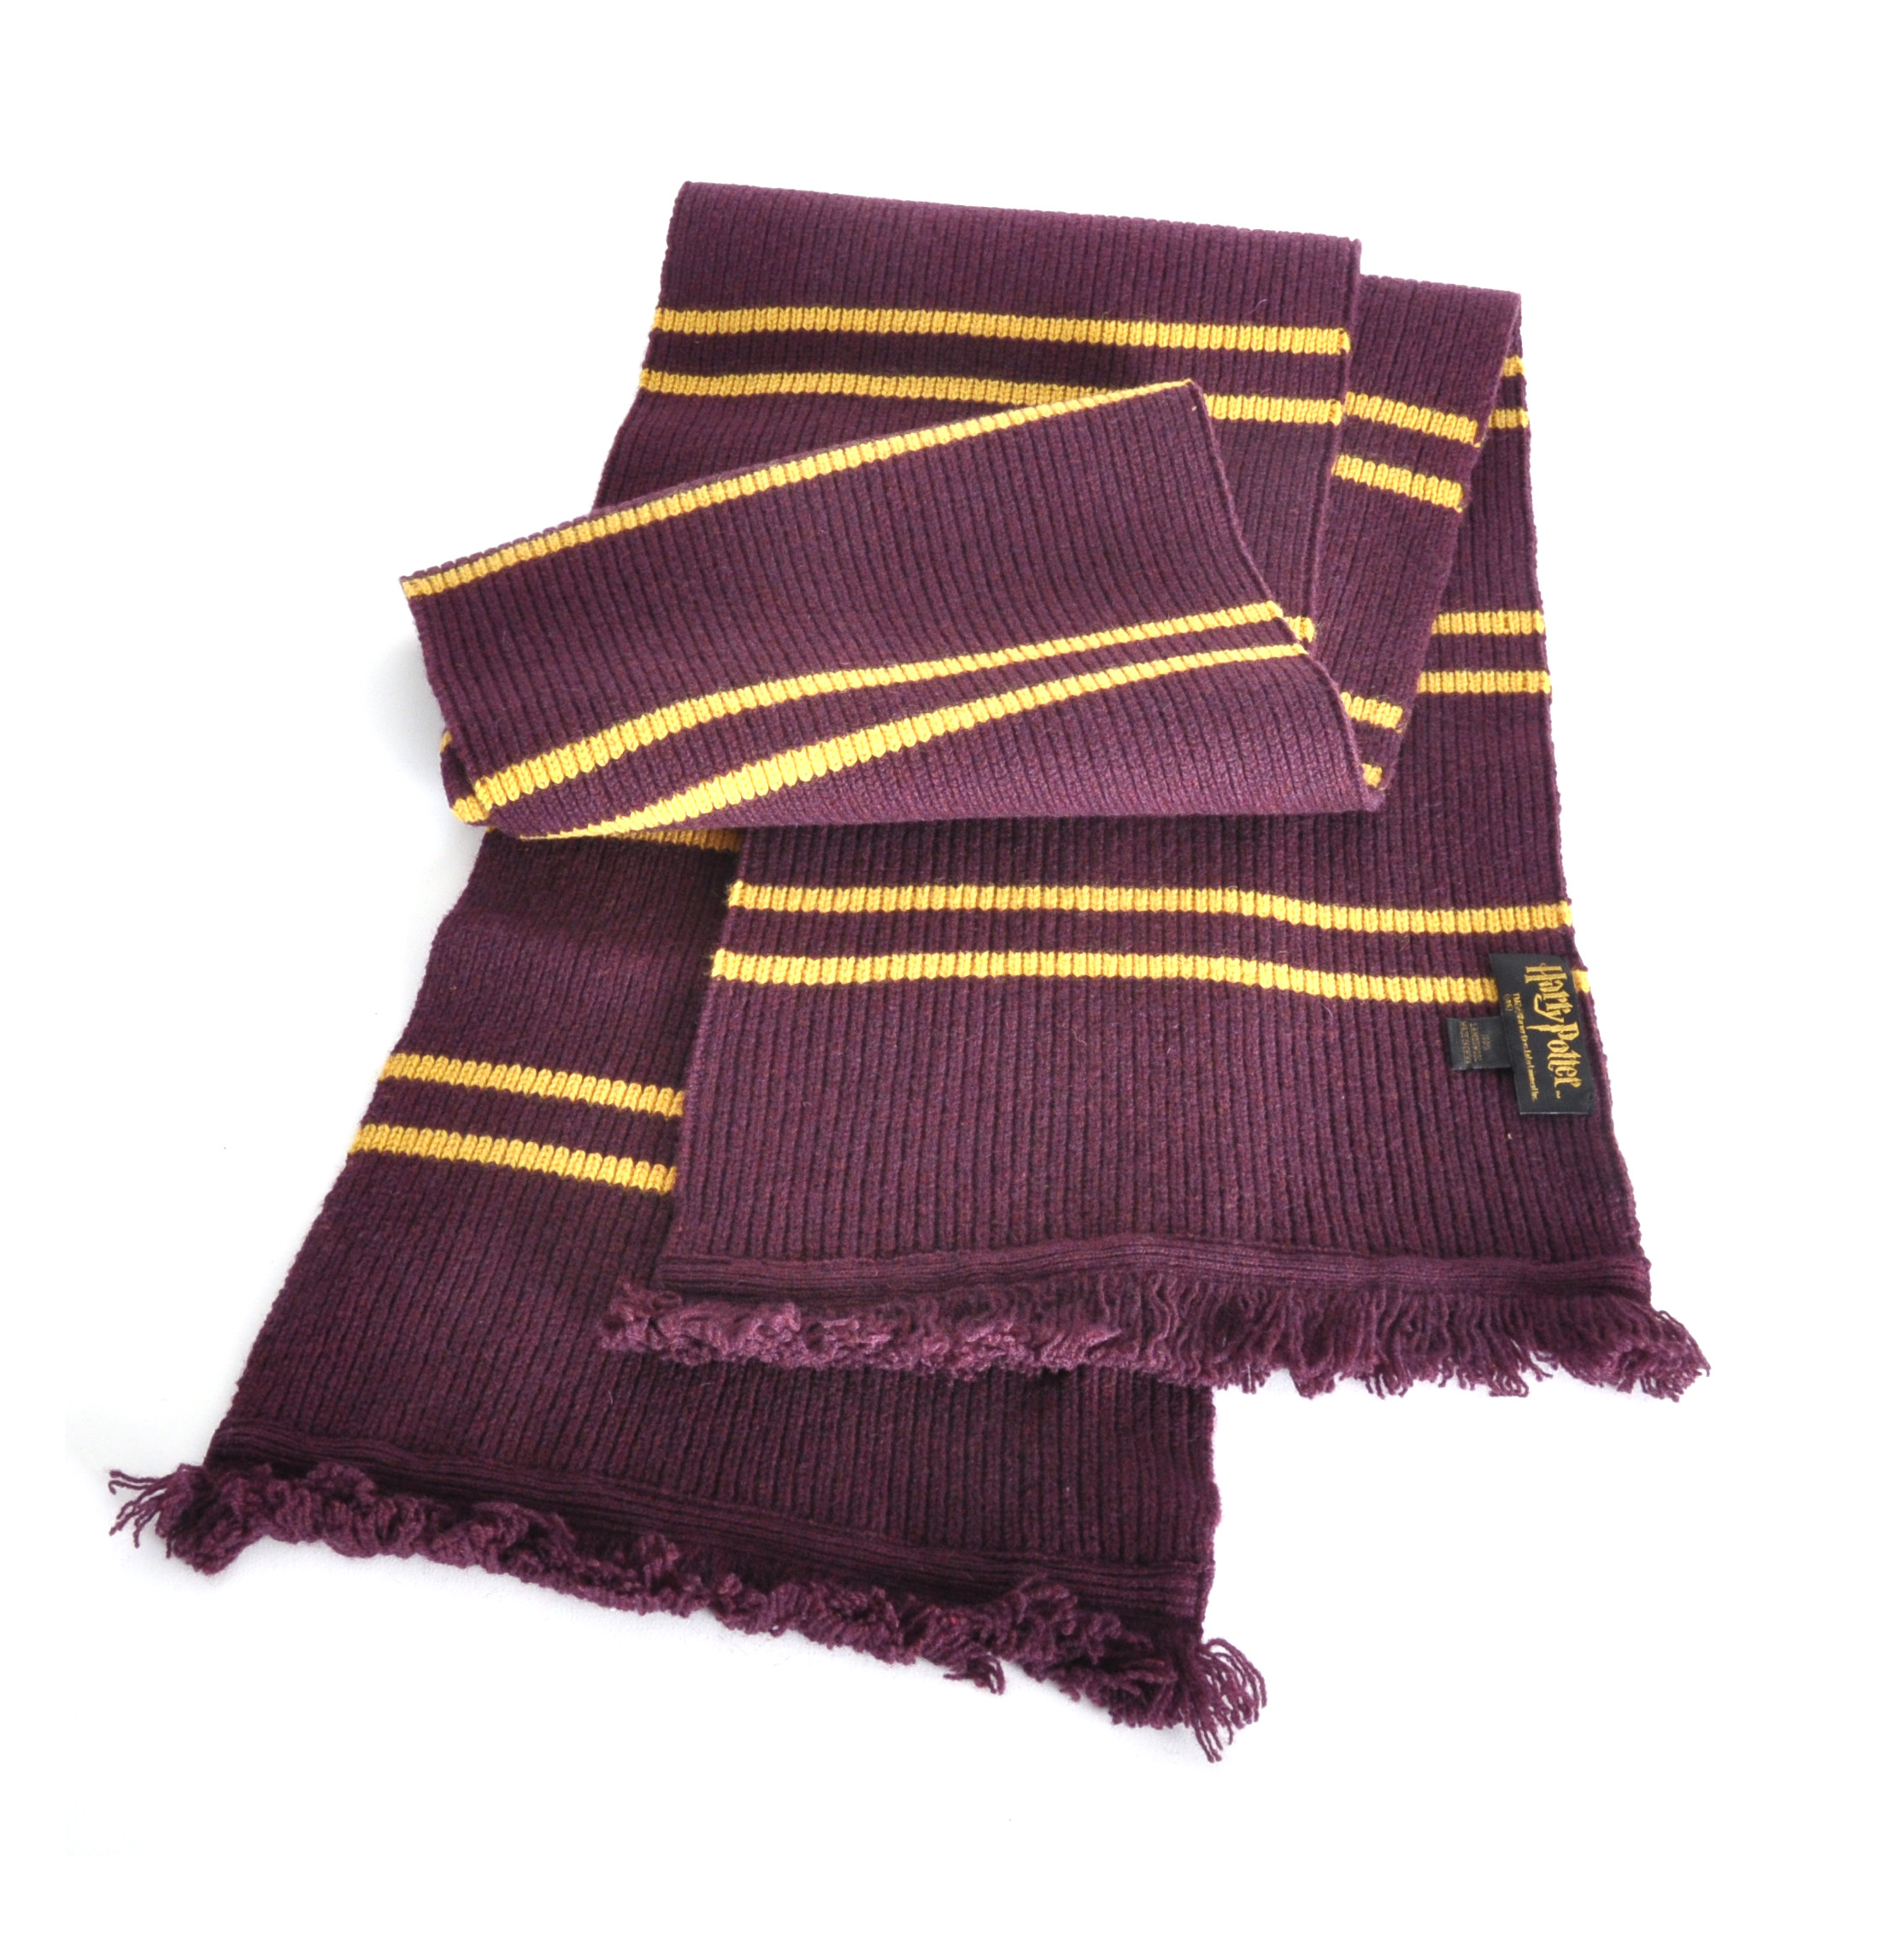 Gryffindors™ House Wool Scarf - Harry Potter